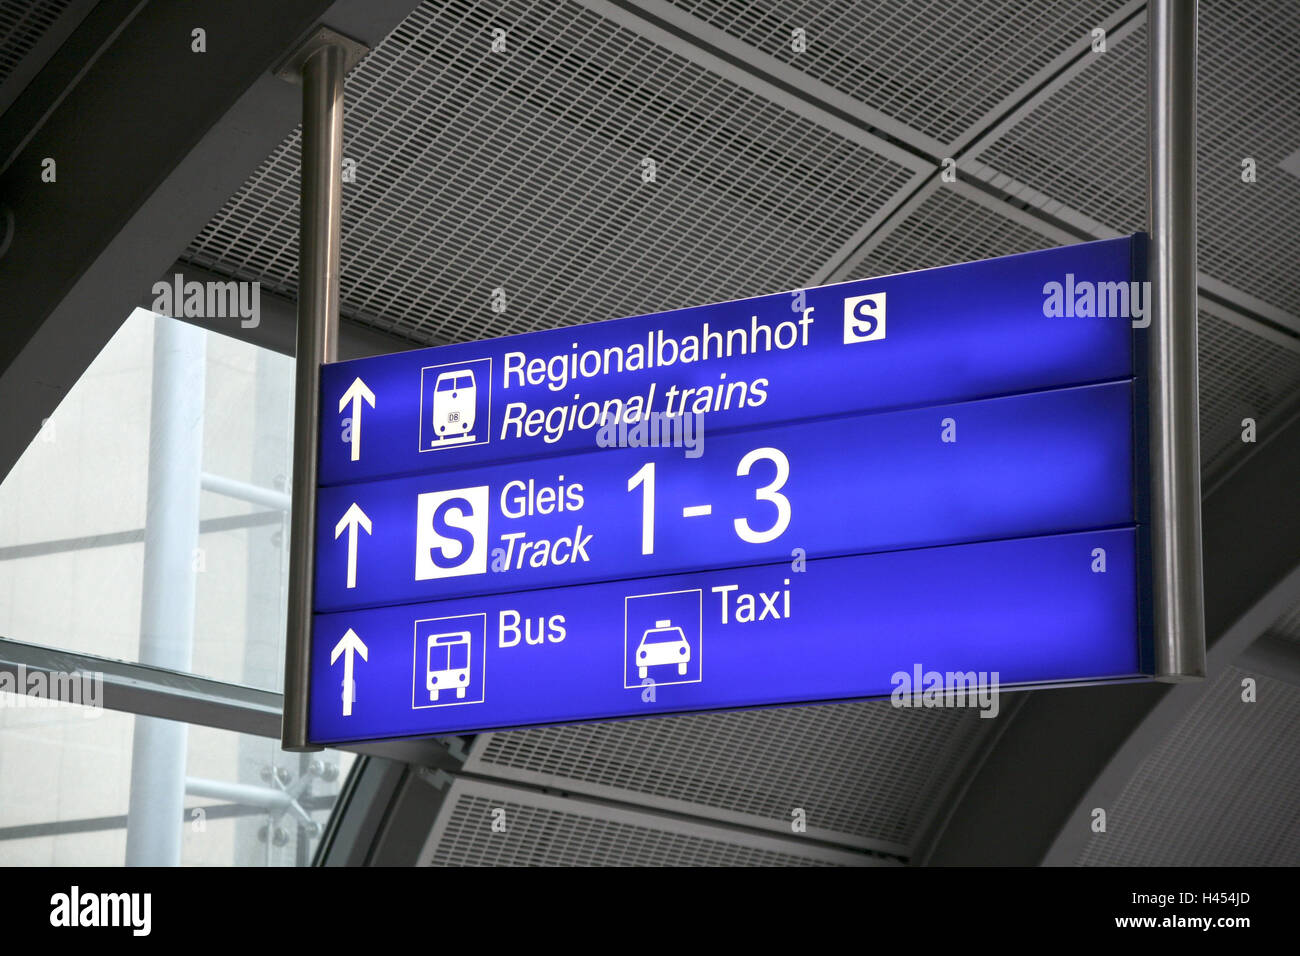 airport bus sign stock photos airport bus sign stock images alamy. Black Bedroom Furniture Sets. Home Design Ideas